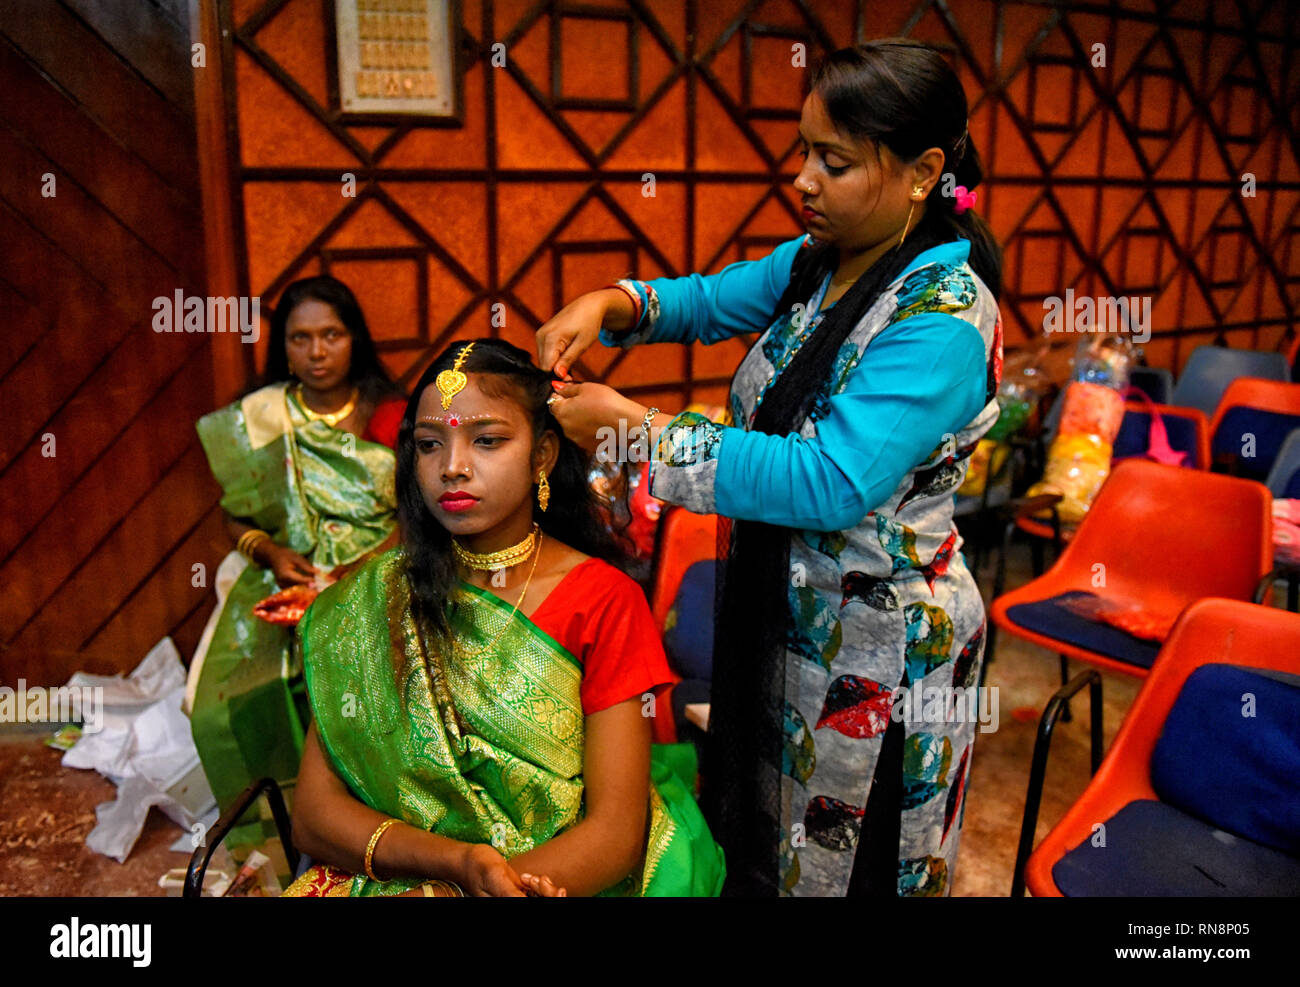 Girls are seen getting ready and  as they wait for the marriage ceremony during the Mass Marriage programme at Kolkata. Mass marriage programme was organised on the eve of the Valentine week of 164 Couples in the city of Kolkata by a NGO named Aloy Fera. Stock Photo